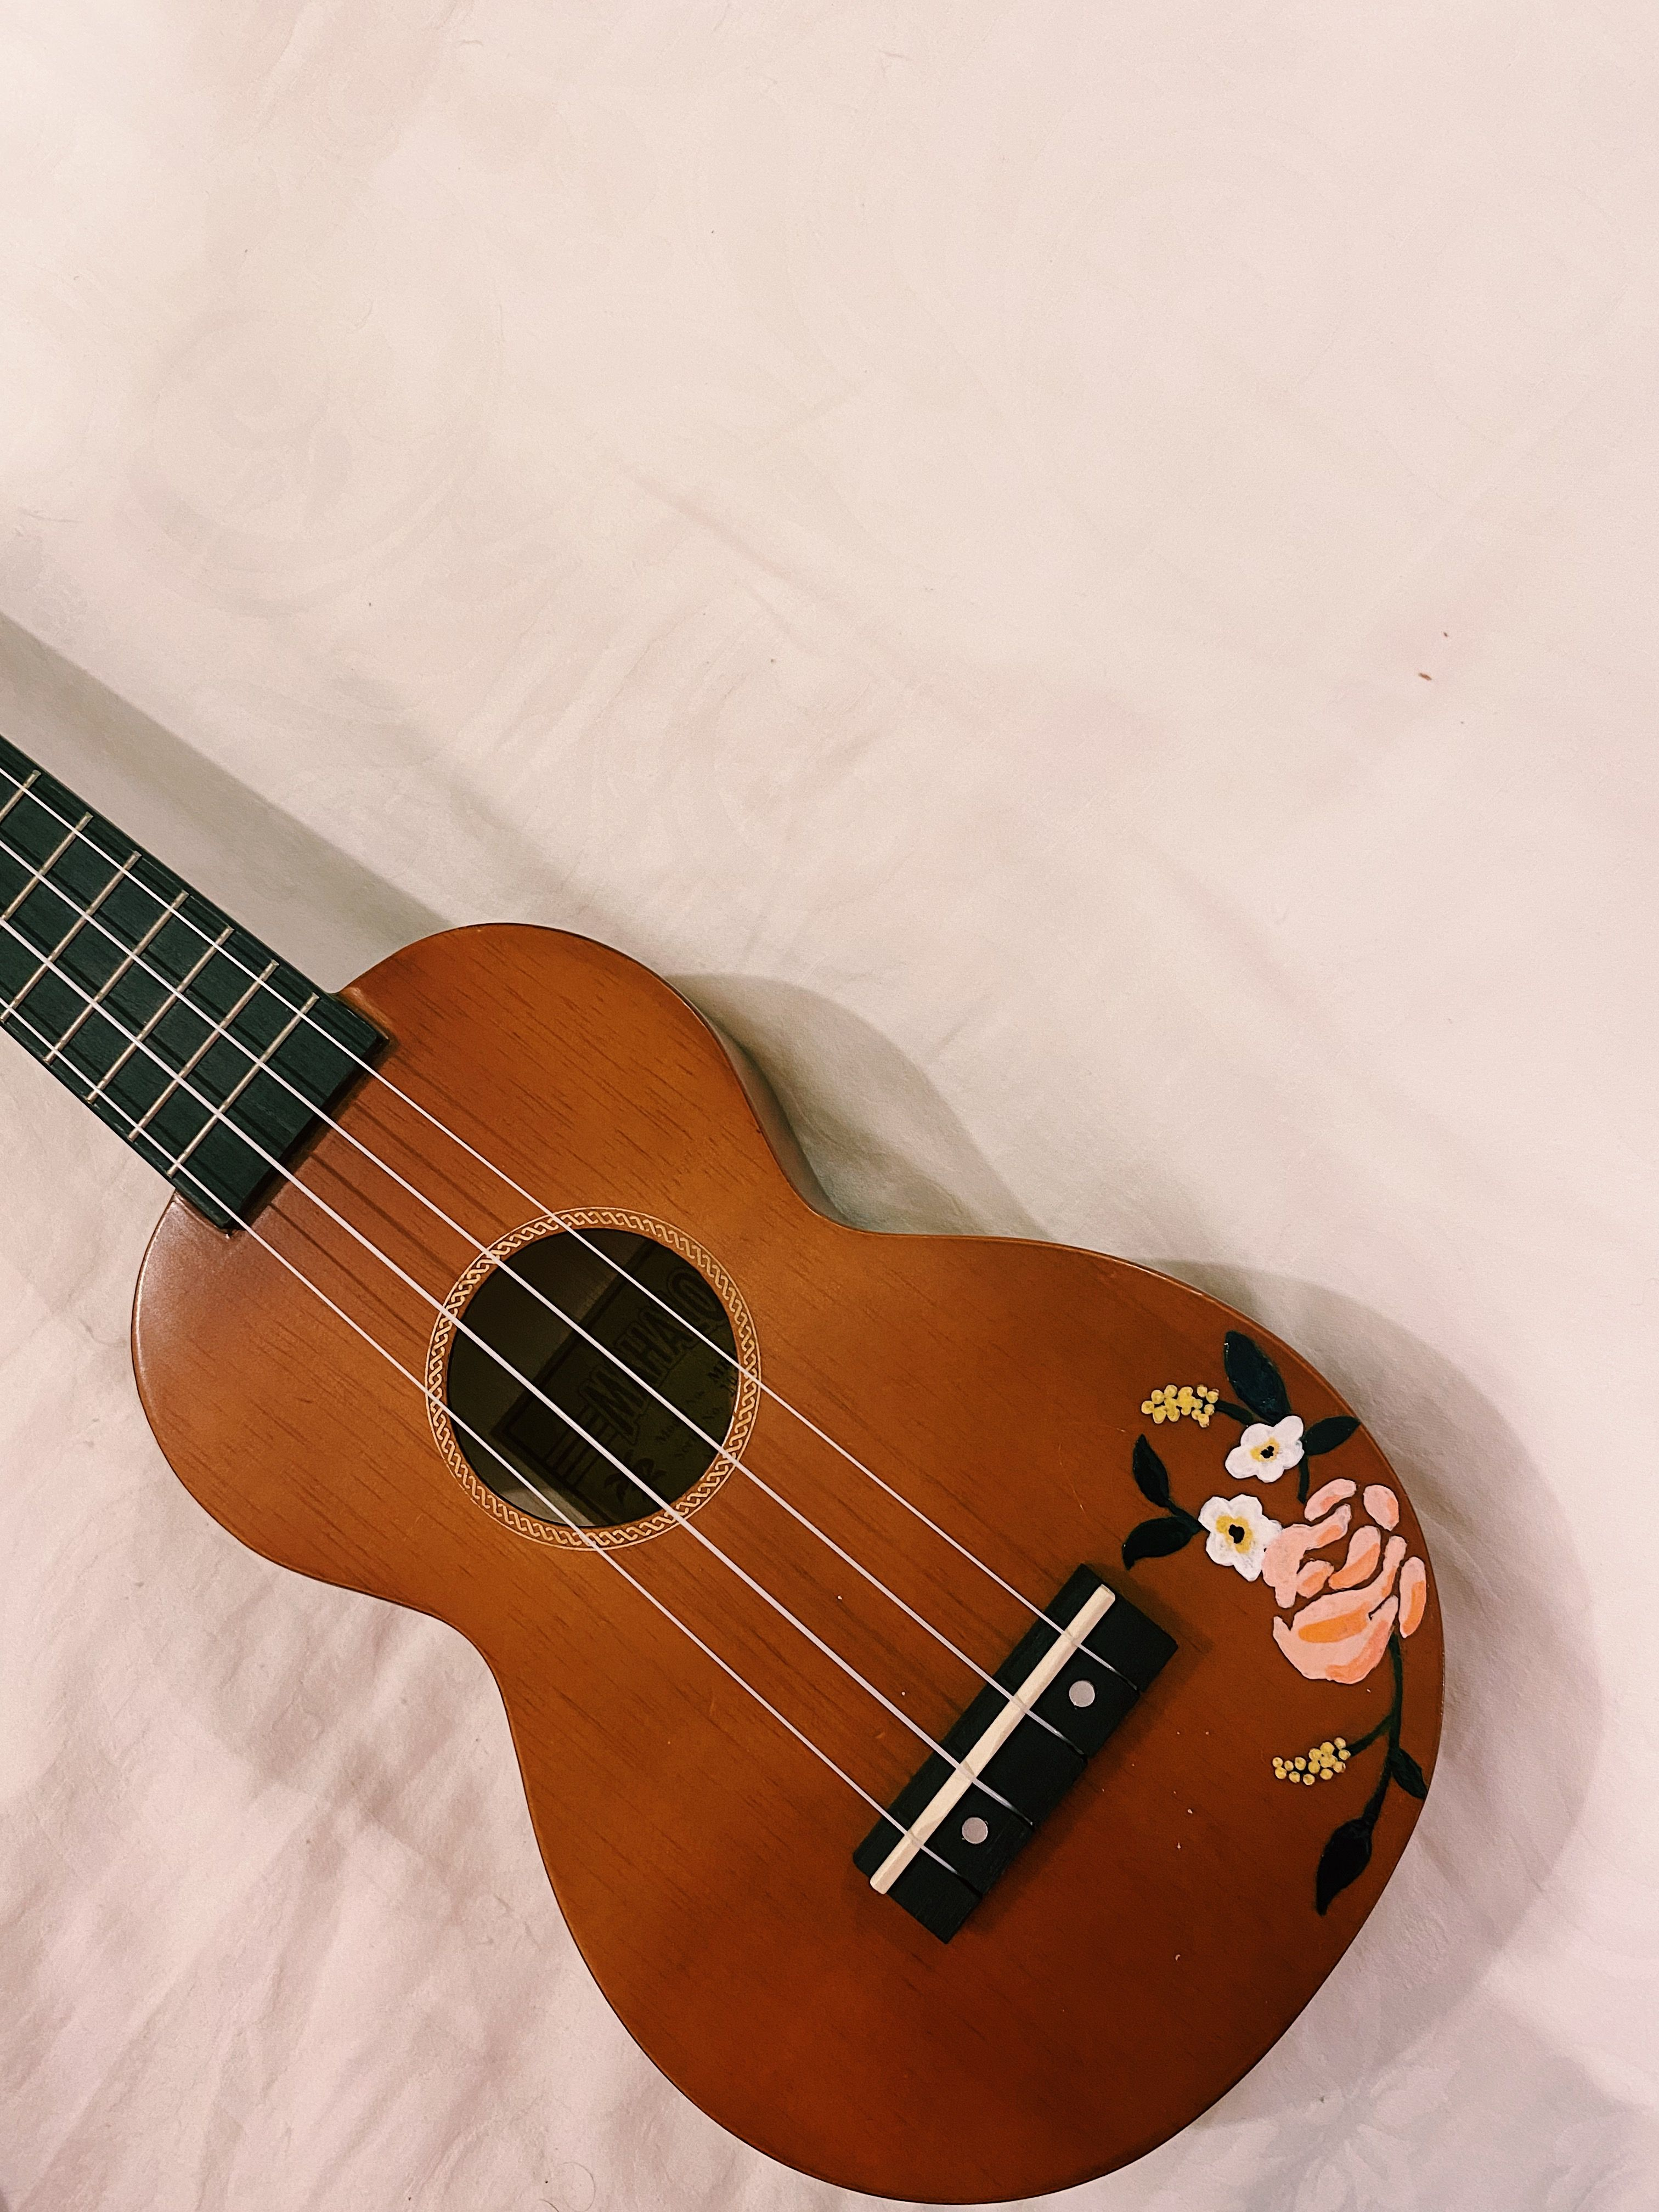 Hand Painted Ukulele Diy Art Inspired By Anna Bond In 2020 Ukulele Art Ukulele Diy Painted Ukulele